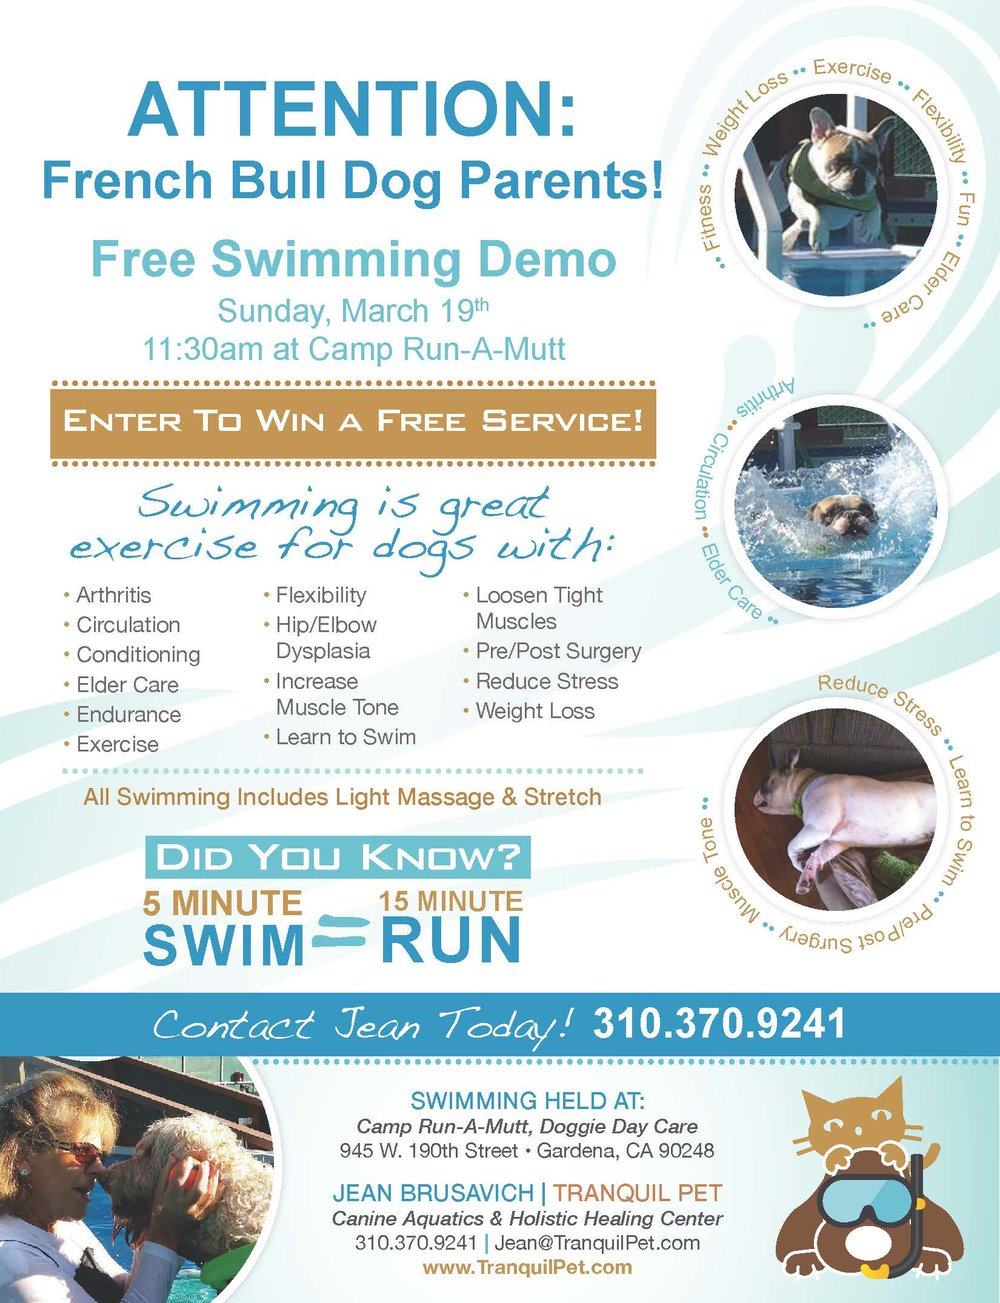 French Bull Dog, canine swimming, dog swiming, animal massage, Reiki